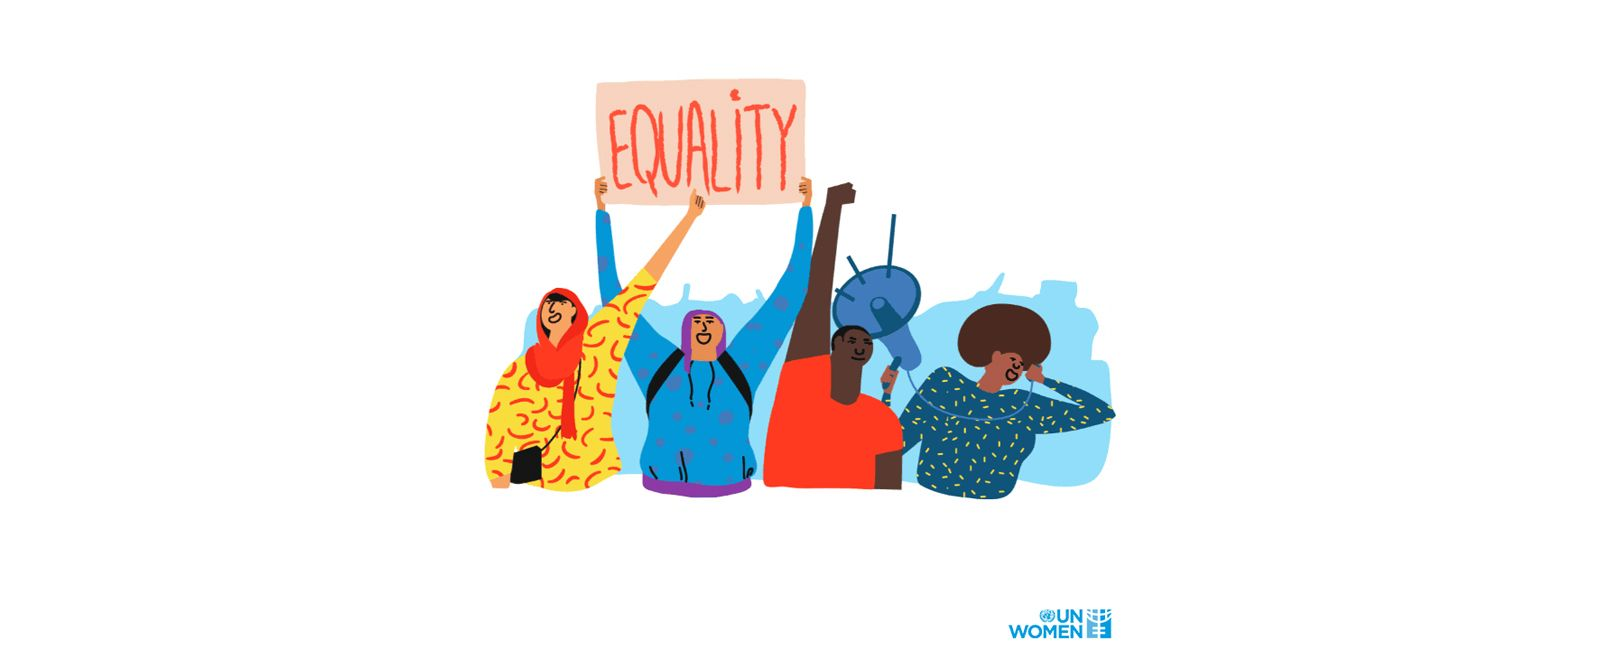 Speak Up Womens Rights GIF by UN Women - Find & Share on GIPHY_cabecera_RRSS